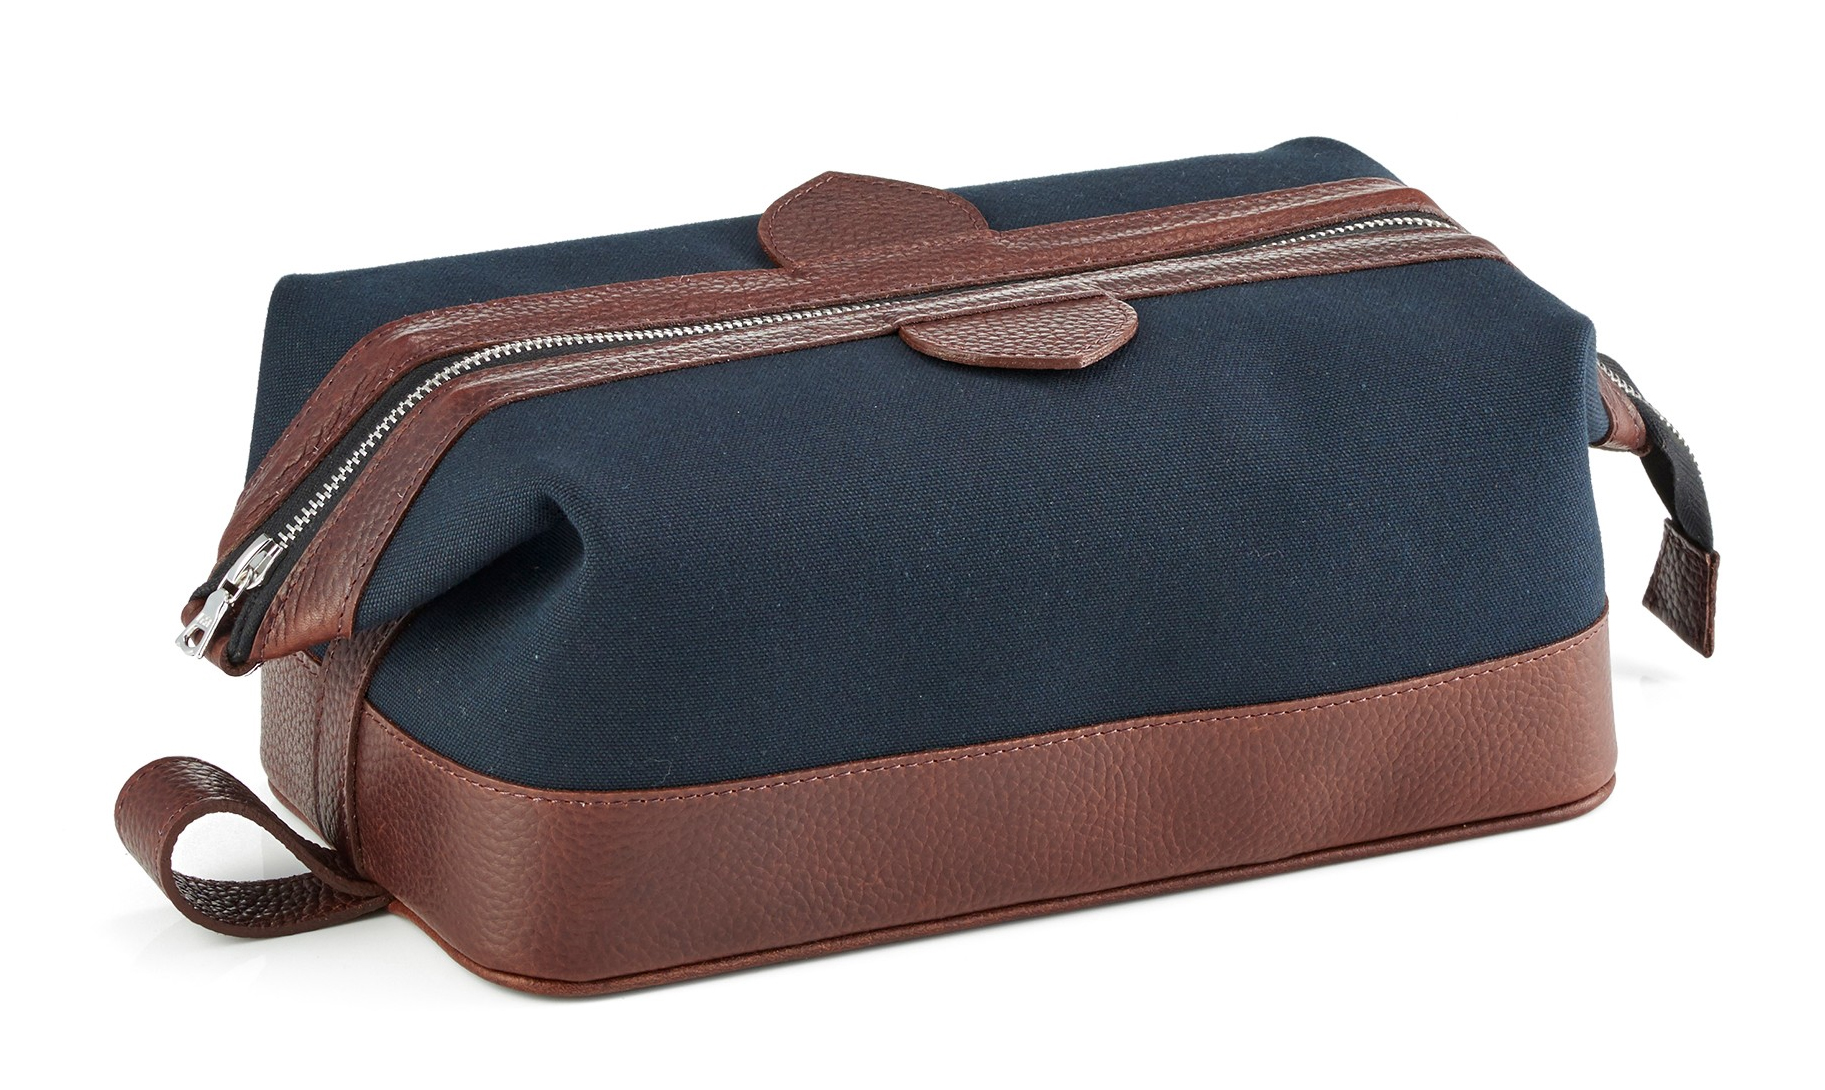 Daines and Hathaway Brown Leather and Navy Canvas Wash Bag